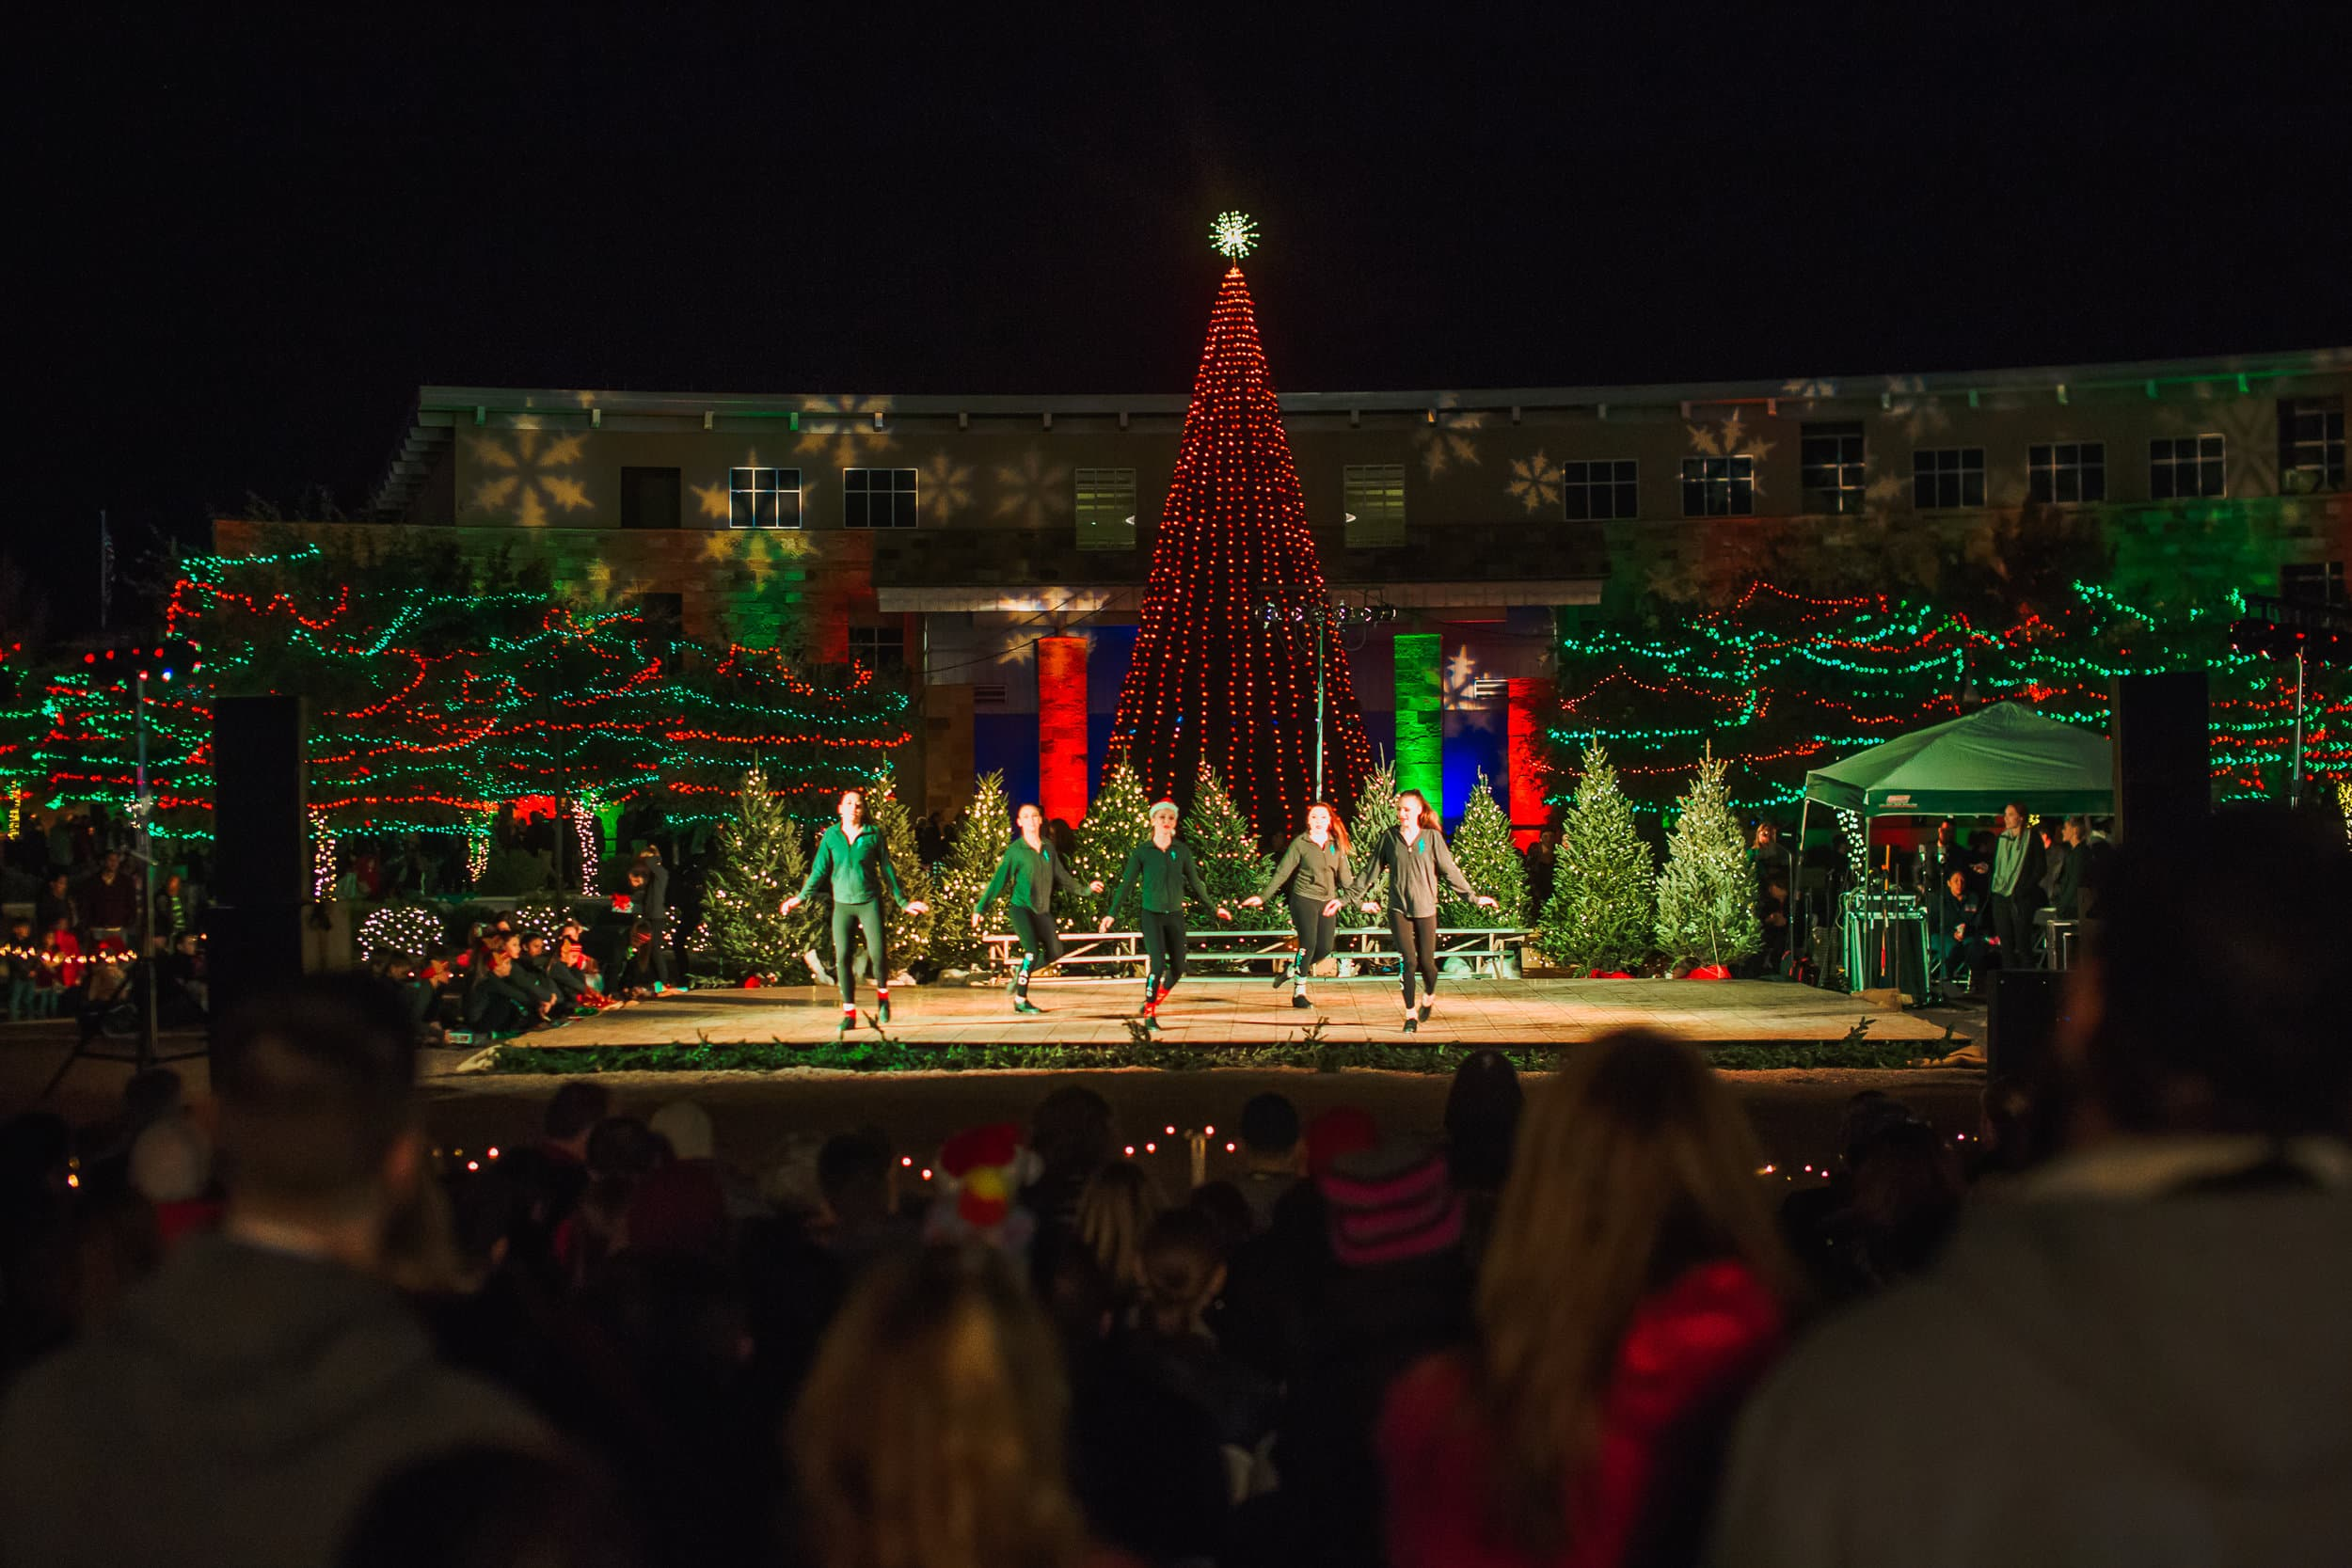 Performers at Marana Holiday Festival